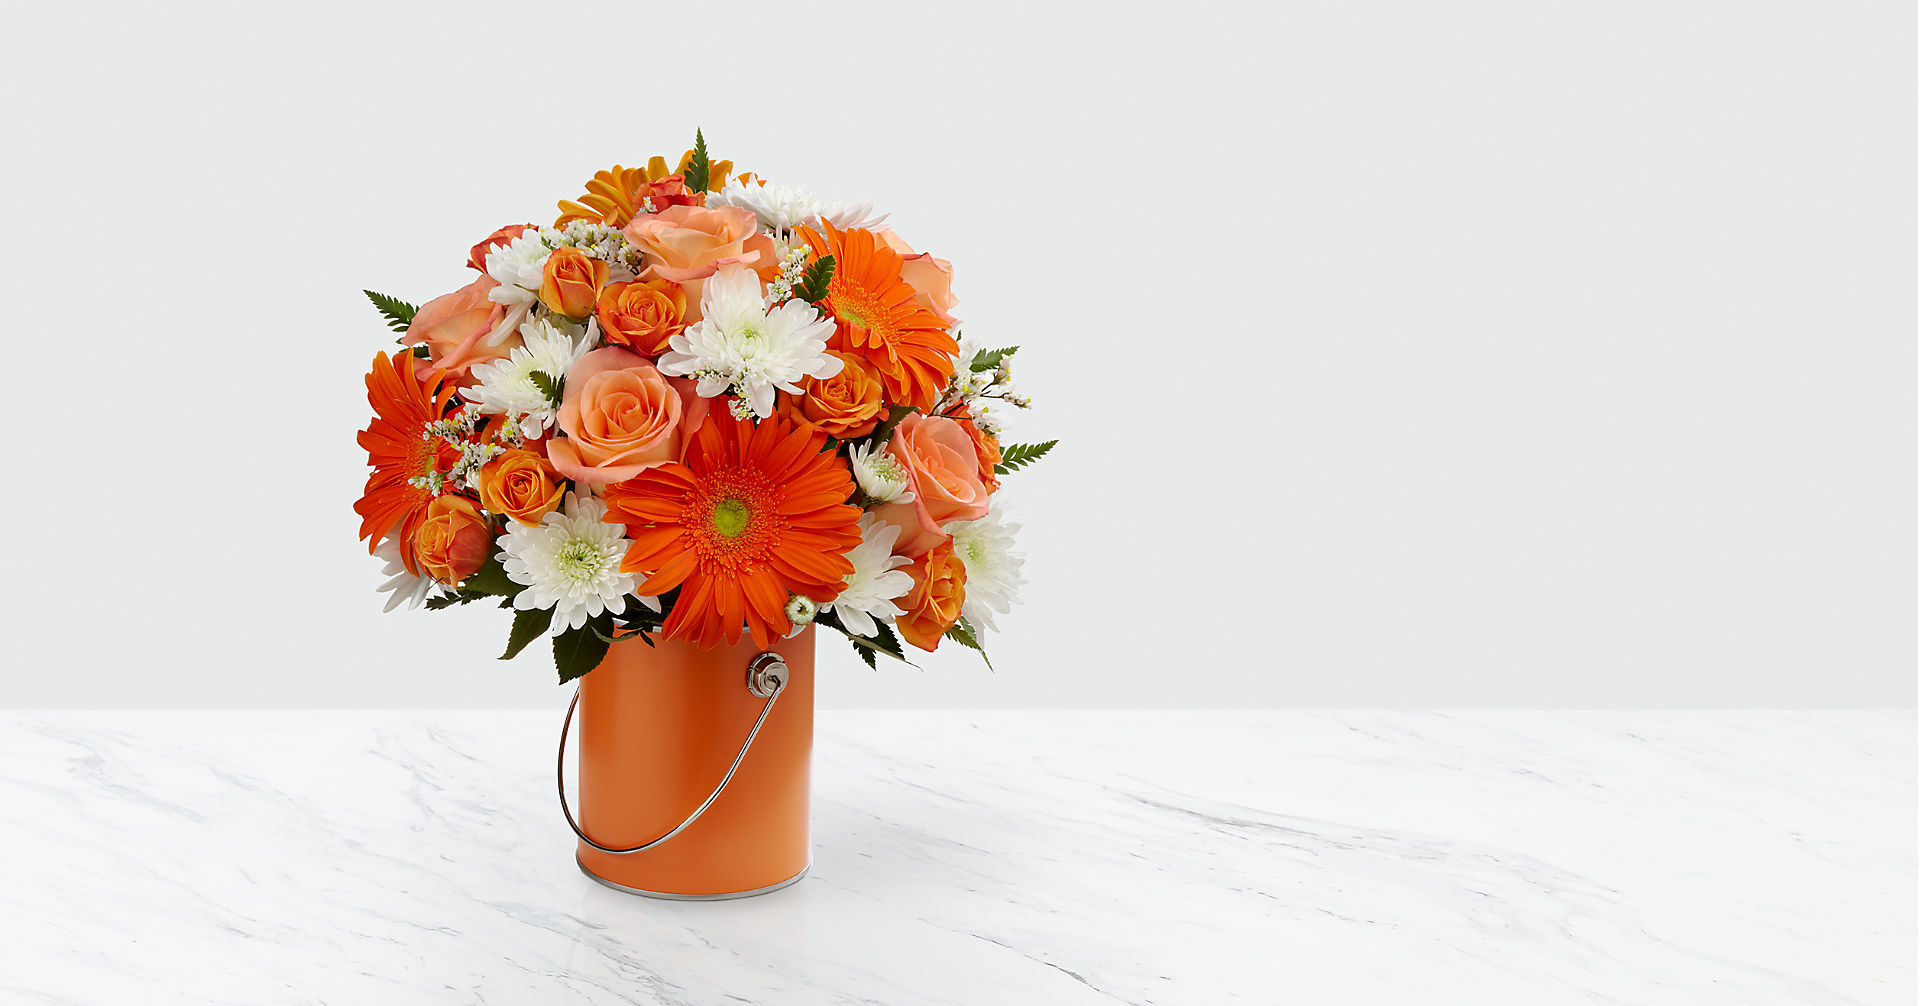 The Color Your Day With Laughter™ Bouquet - VASE INCLUDED - Image 1 Of 2